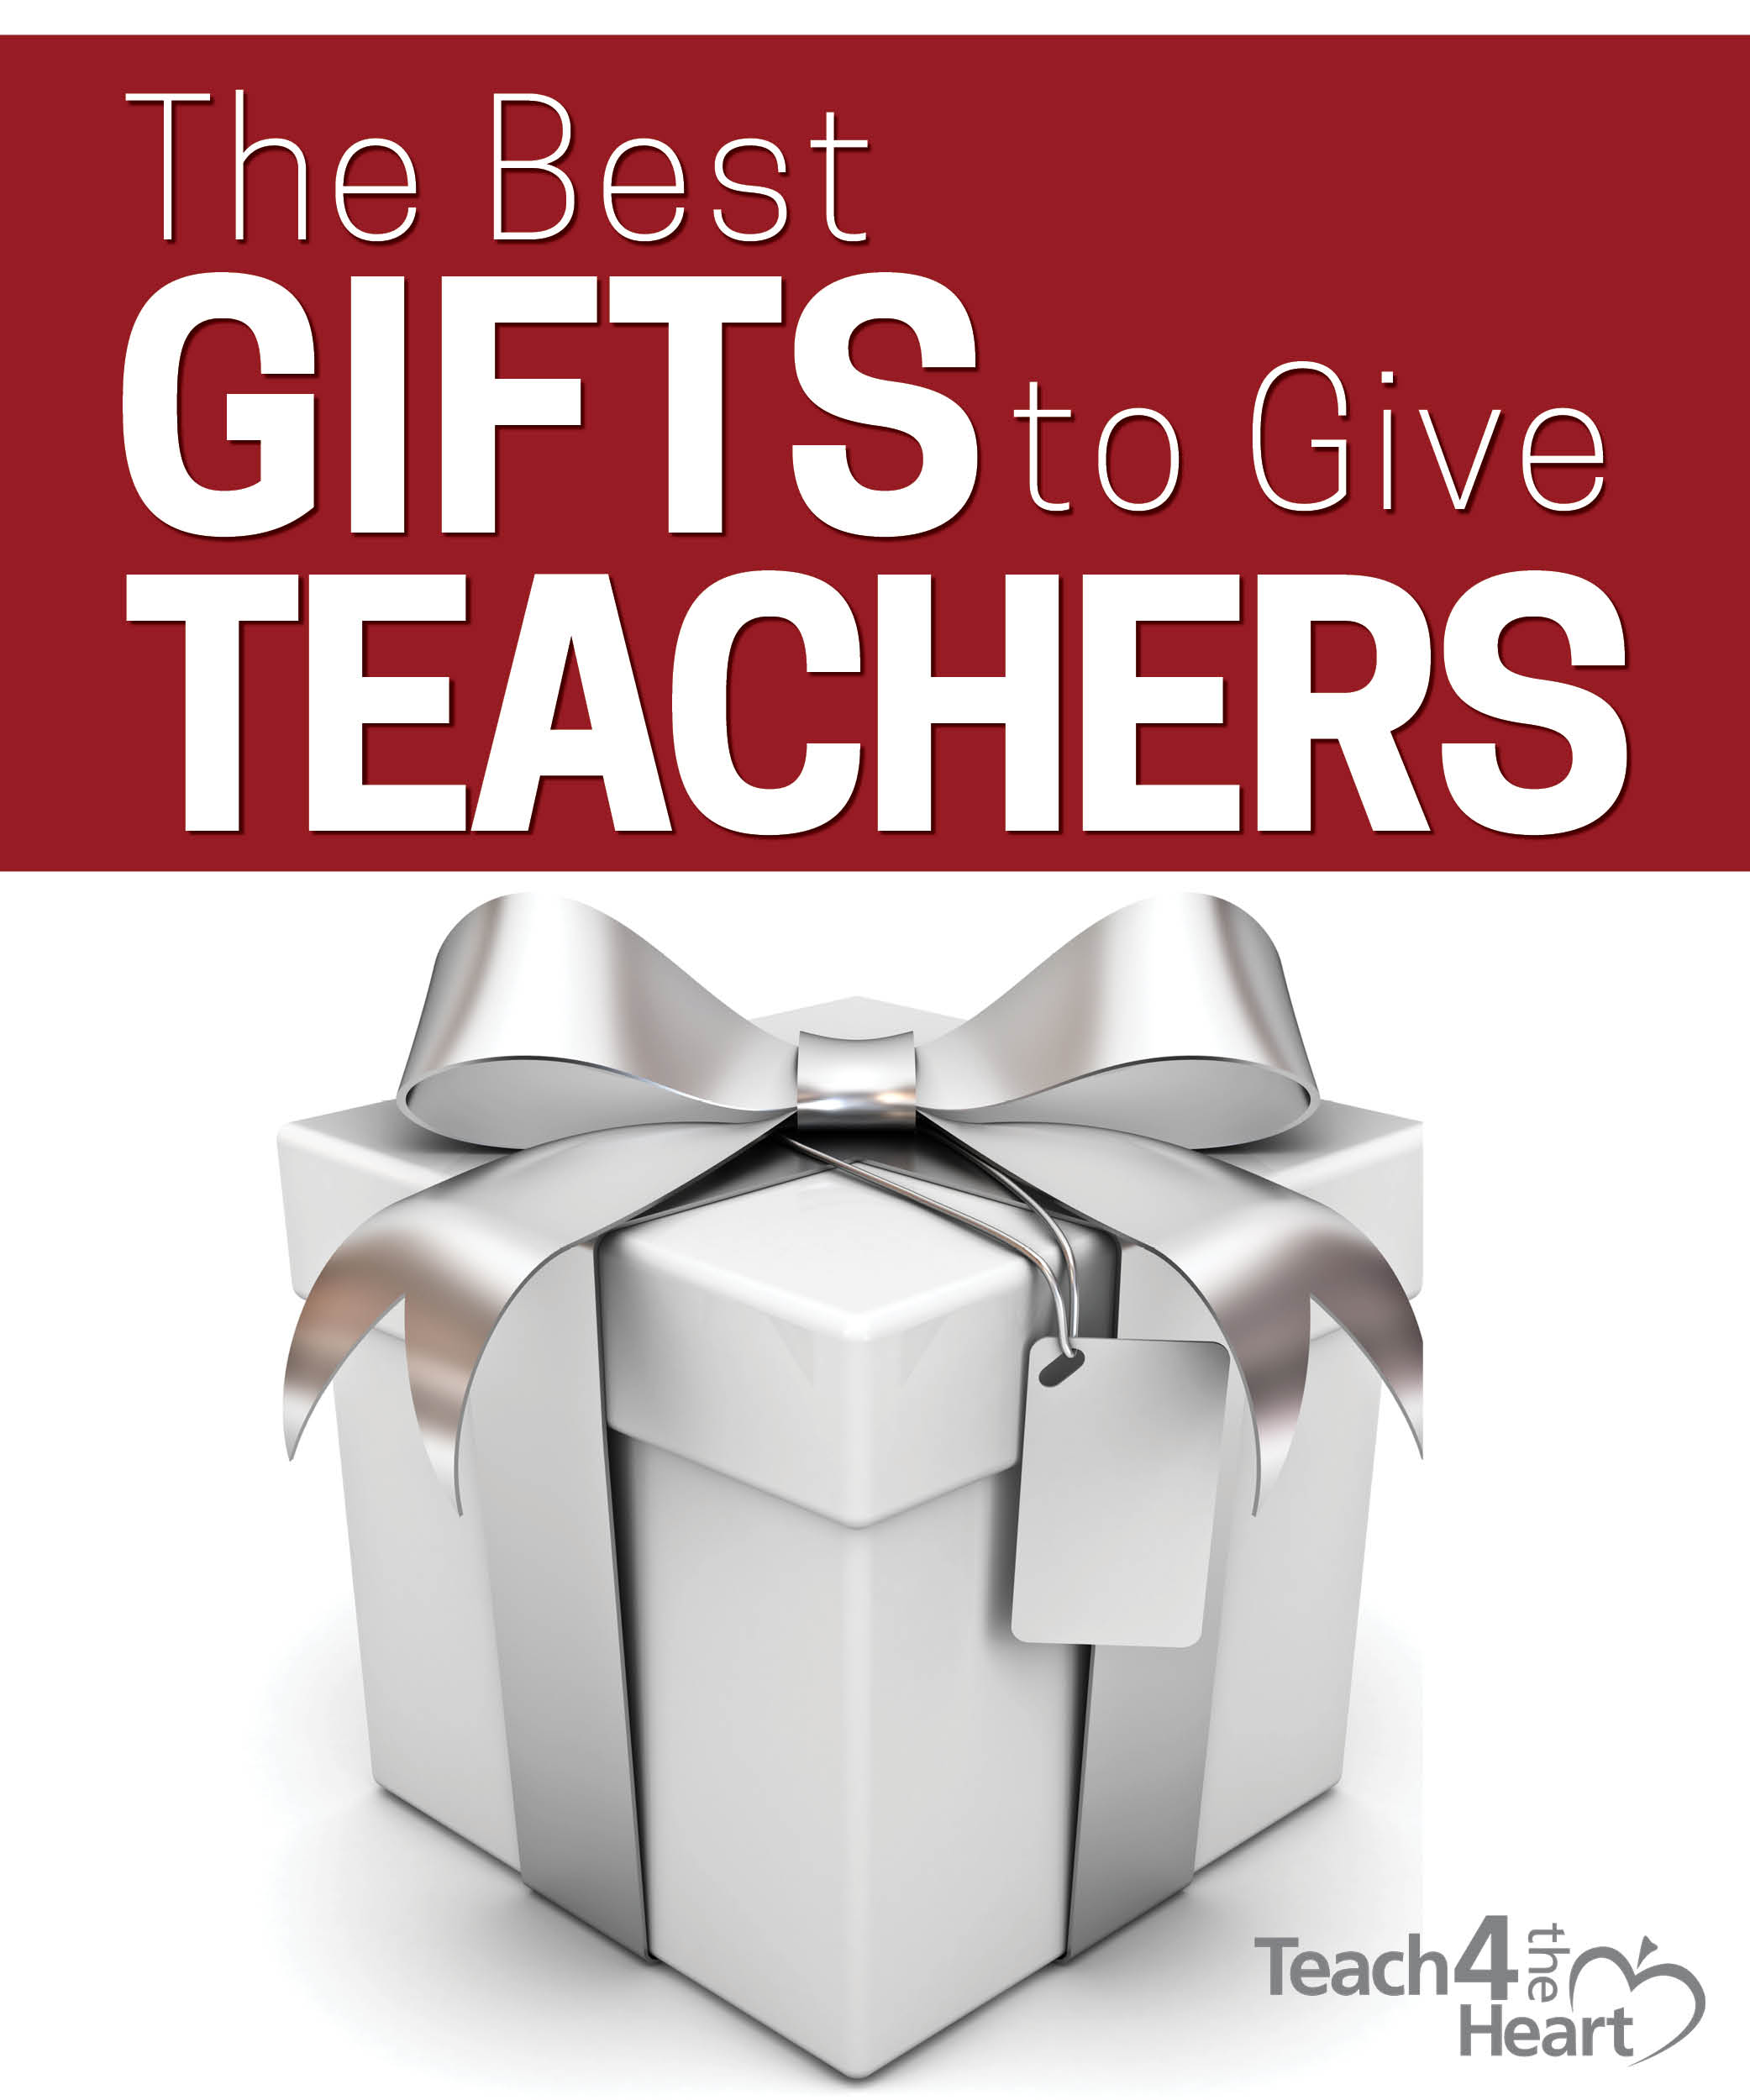 The best gifts to give teachers